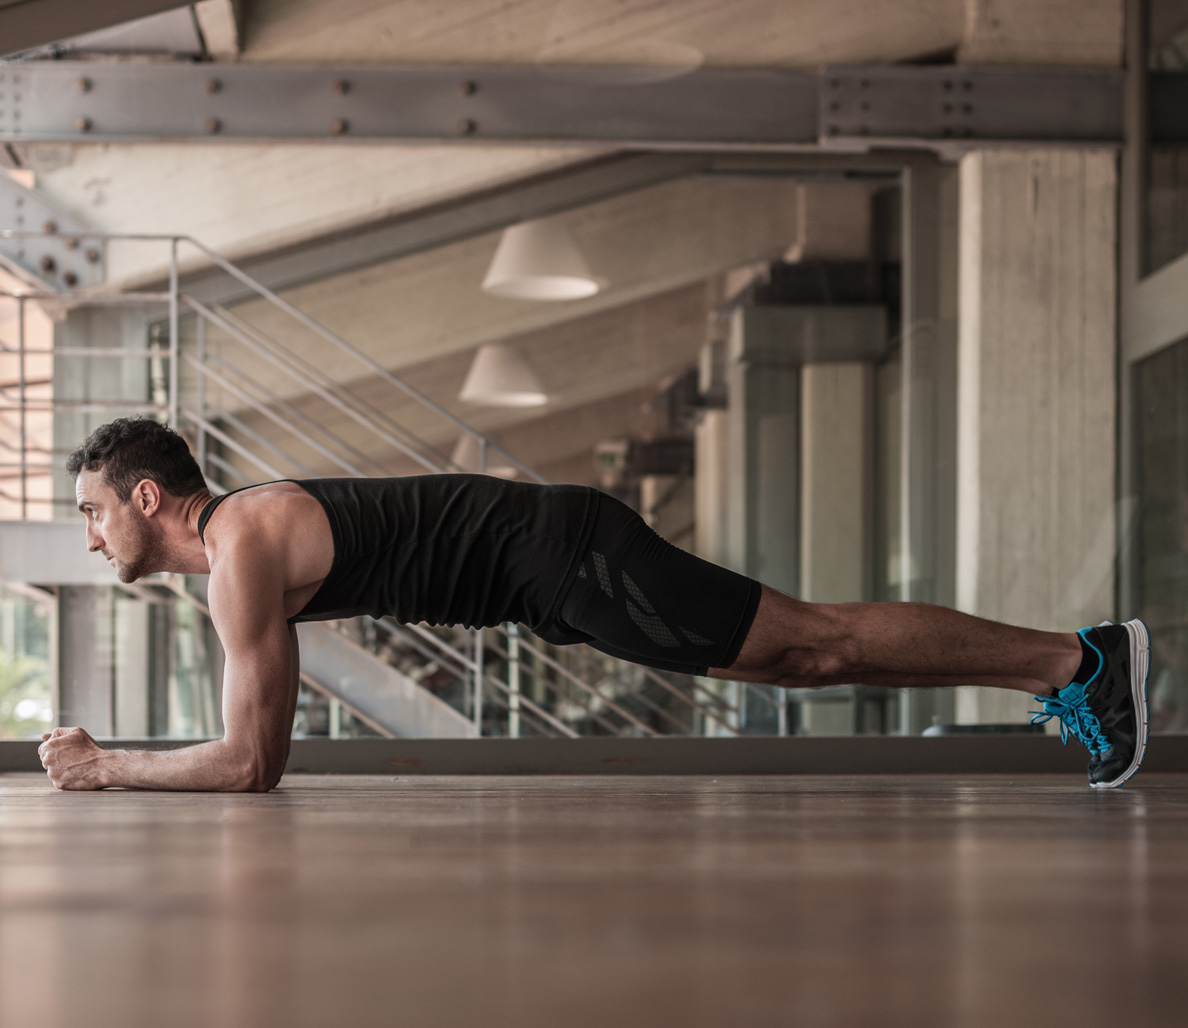 How to Do Plank Exercises A Single Move for Stronger Abs